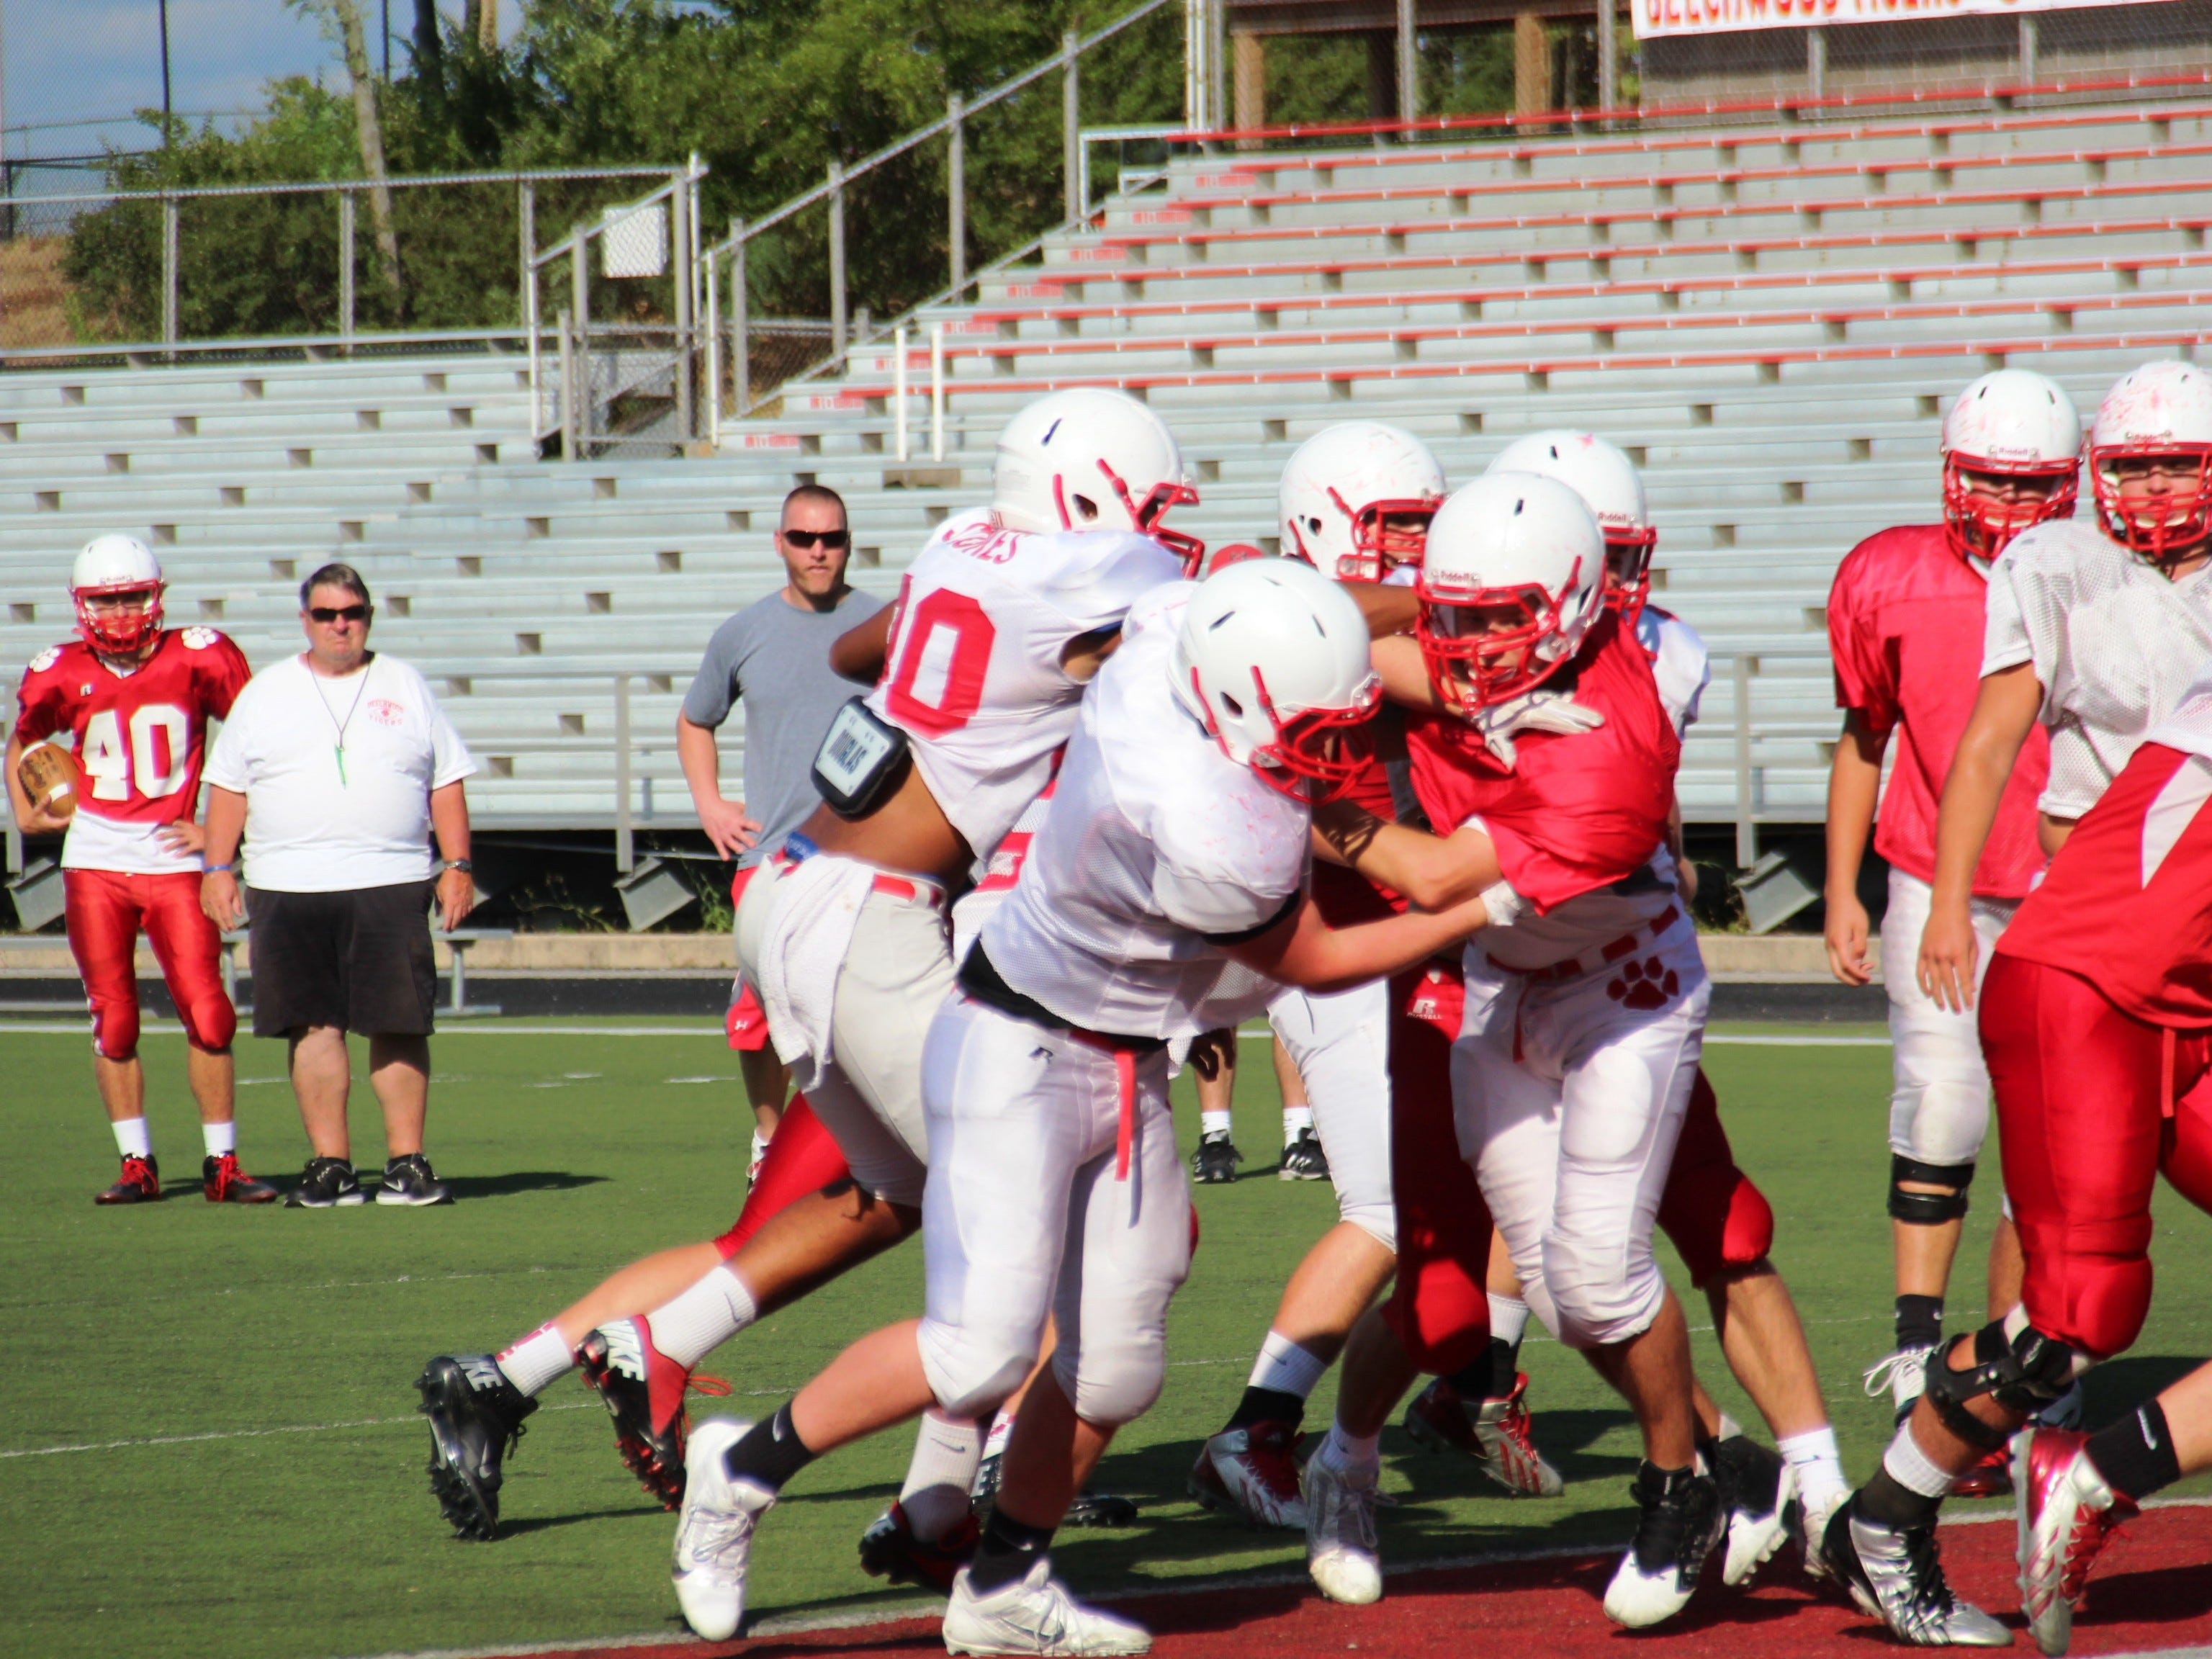 The Beechwood Tigers football team runs a play in practice.